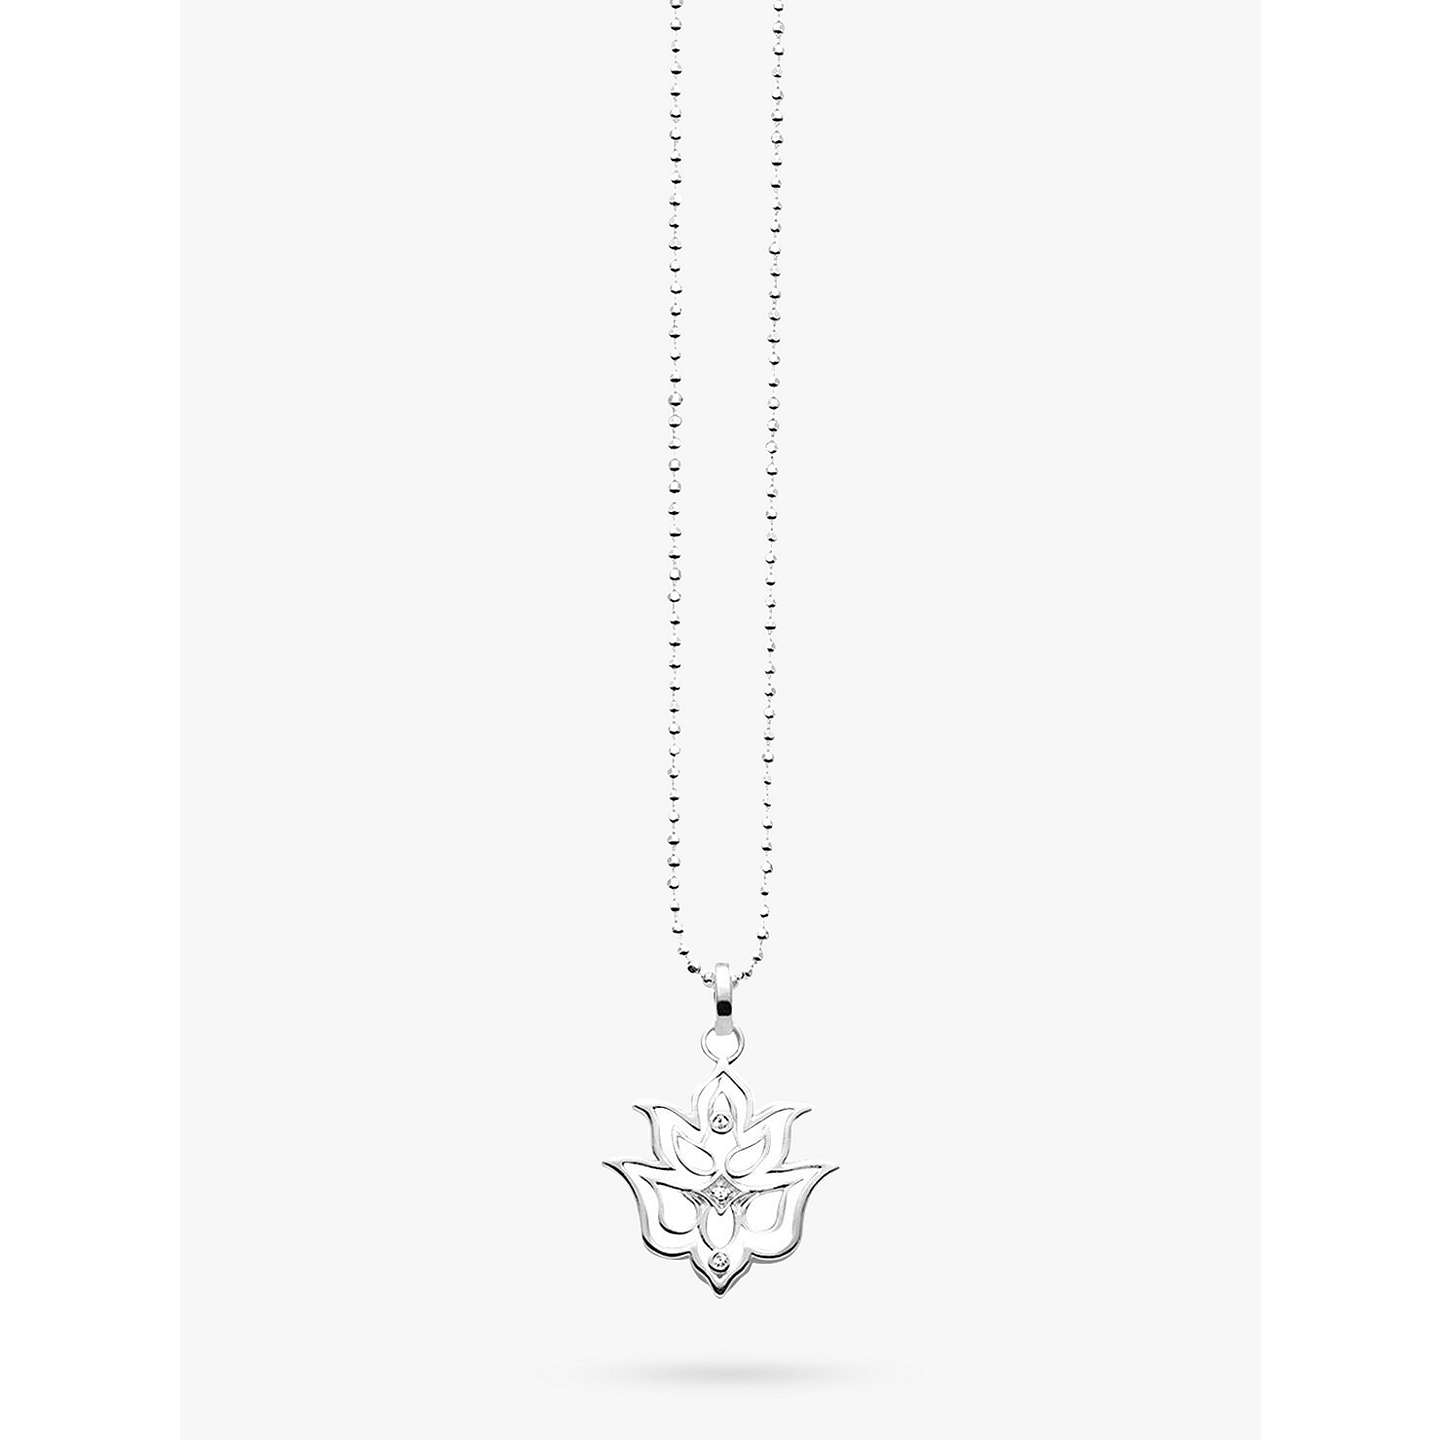 Thomas sabo glam soul lotus flower pendant necklace silver at buythomas sabo glam soul lotus flower pendant necklace silver online at johnlewis izmirmasajfo